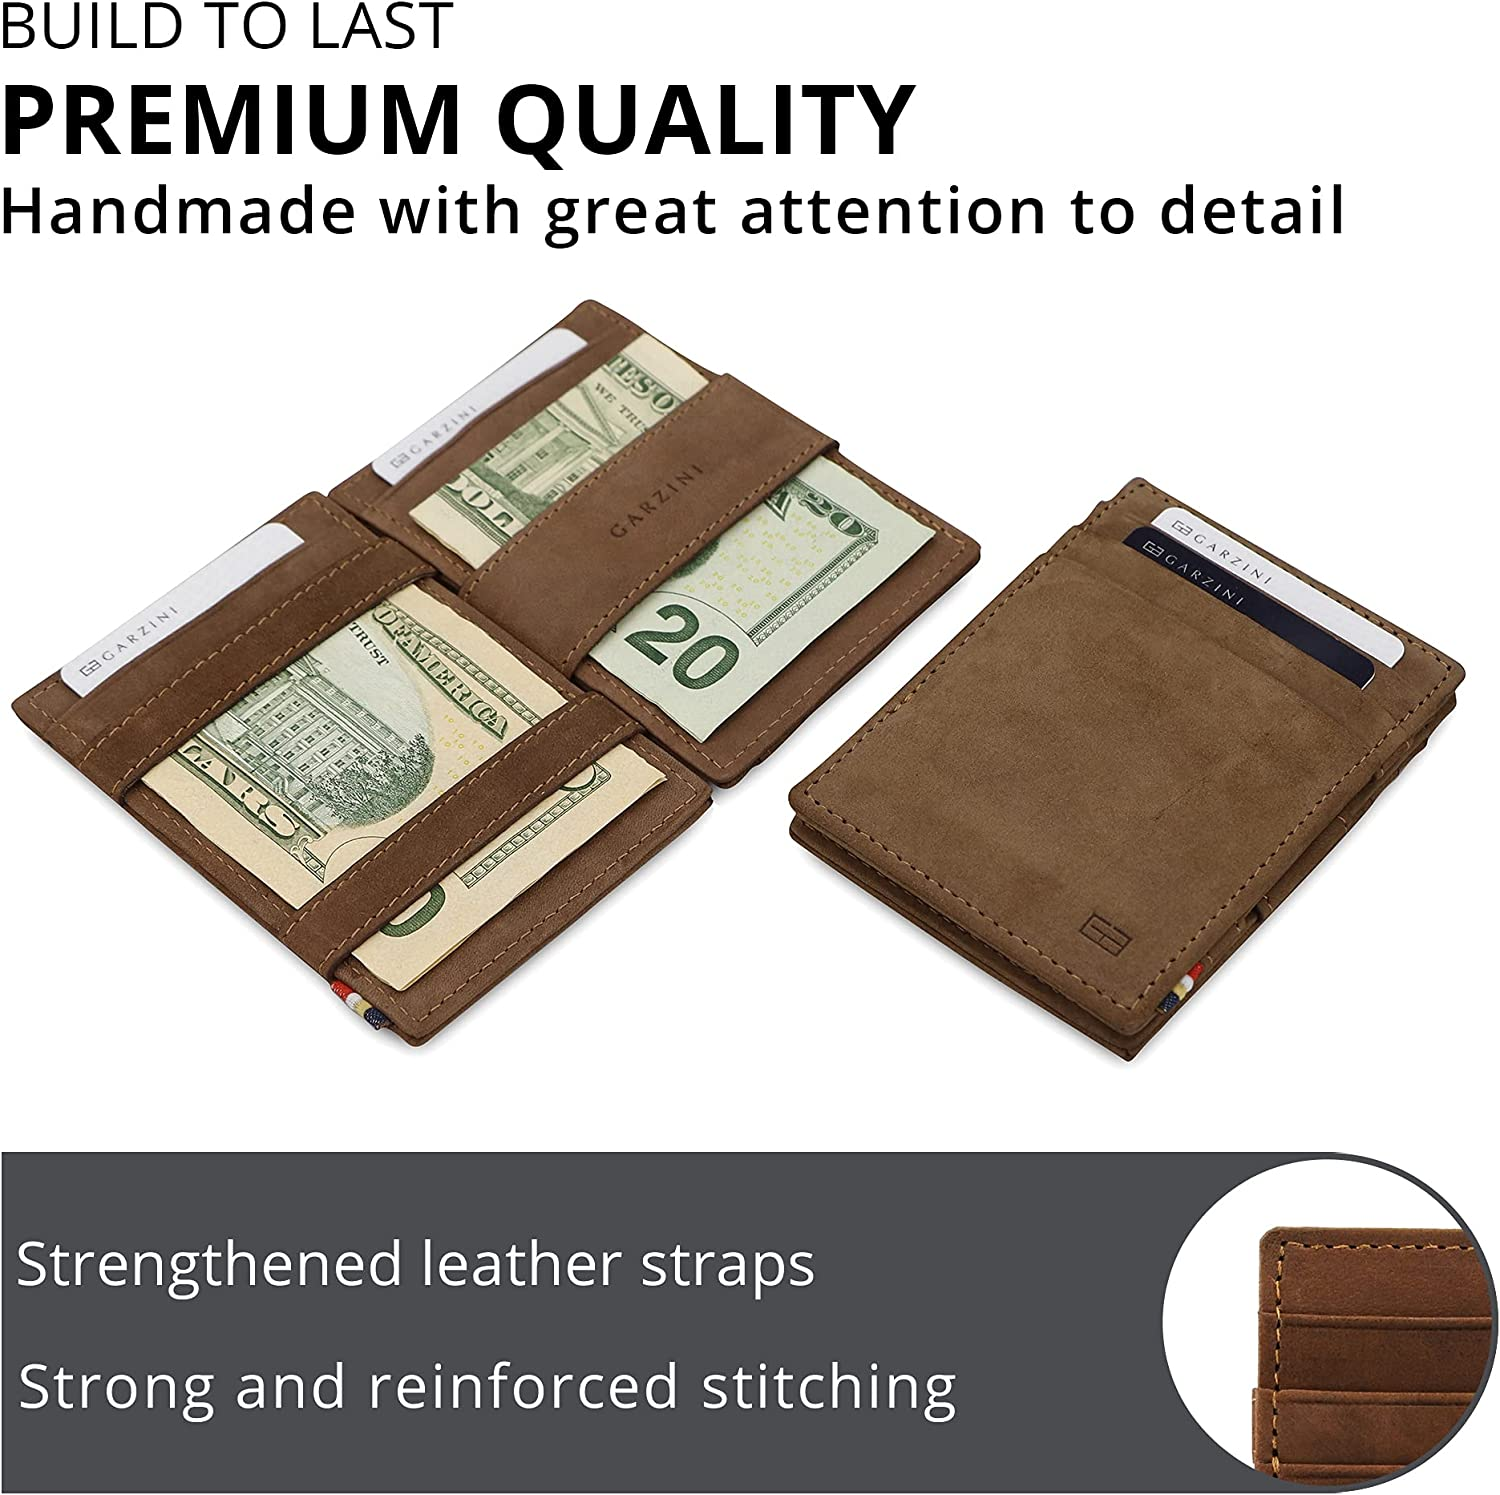 Garzini Magic Wallet with ID Window, Minimalist Wallet with RFID card holder, Leather Wallet for 8 cards, Java Brown